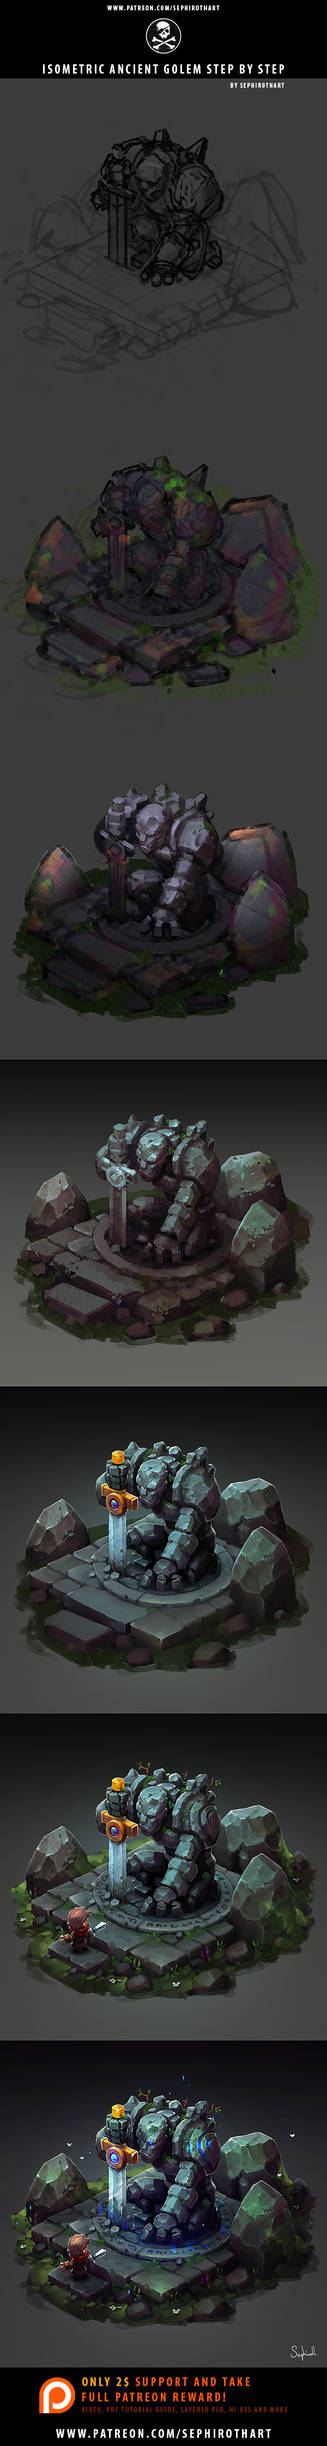 Isometric Golem Step-by-Step